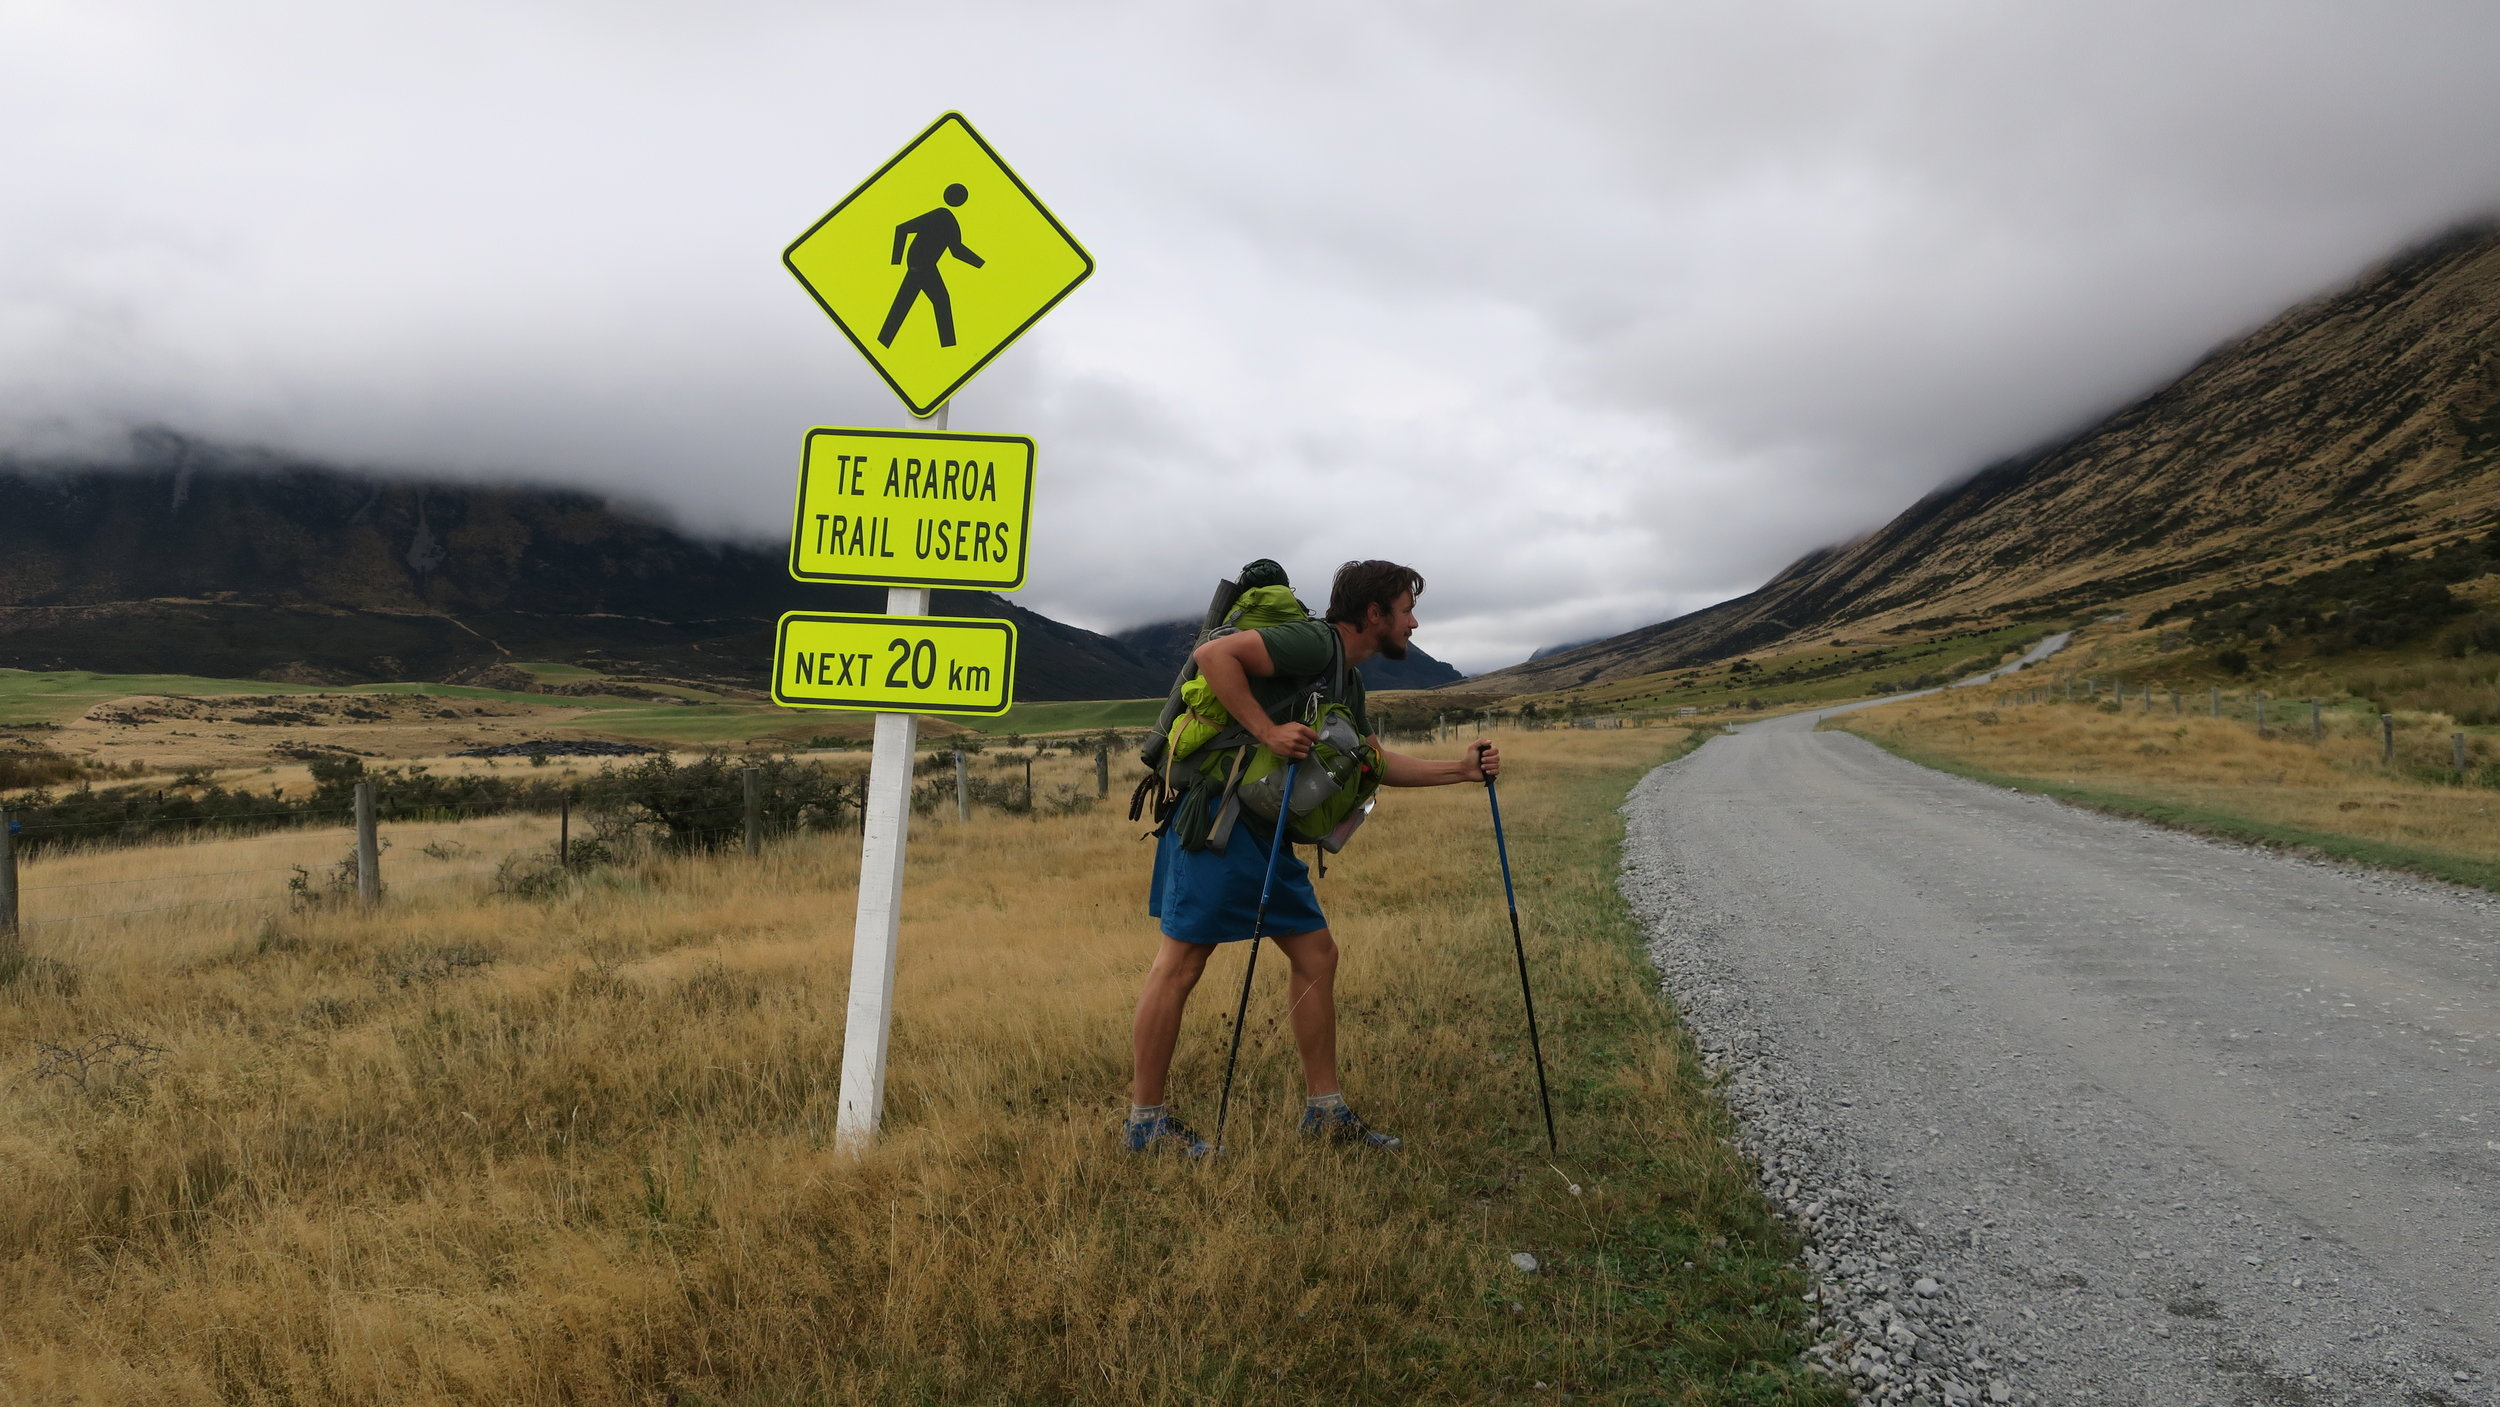 Hiker imitating sign